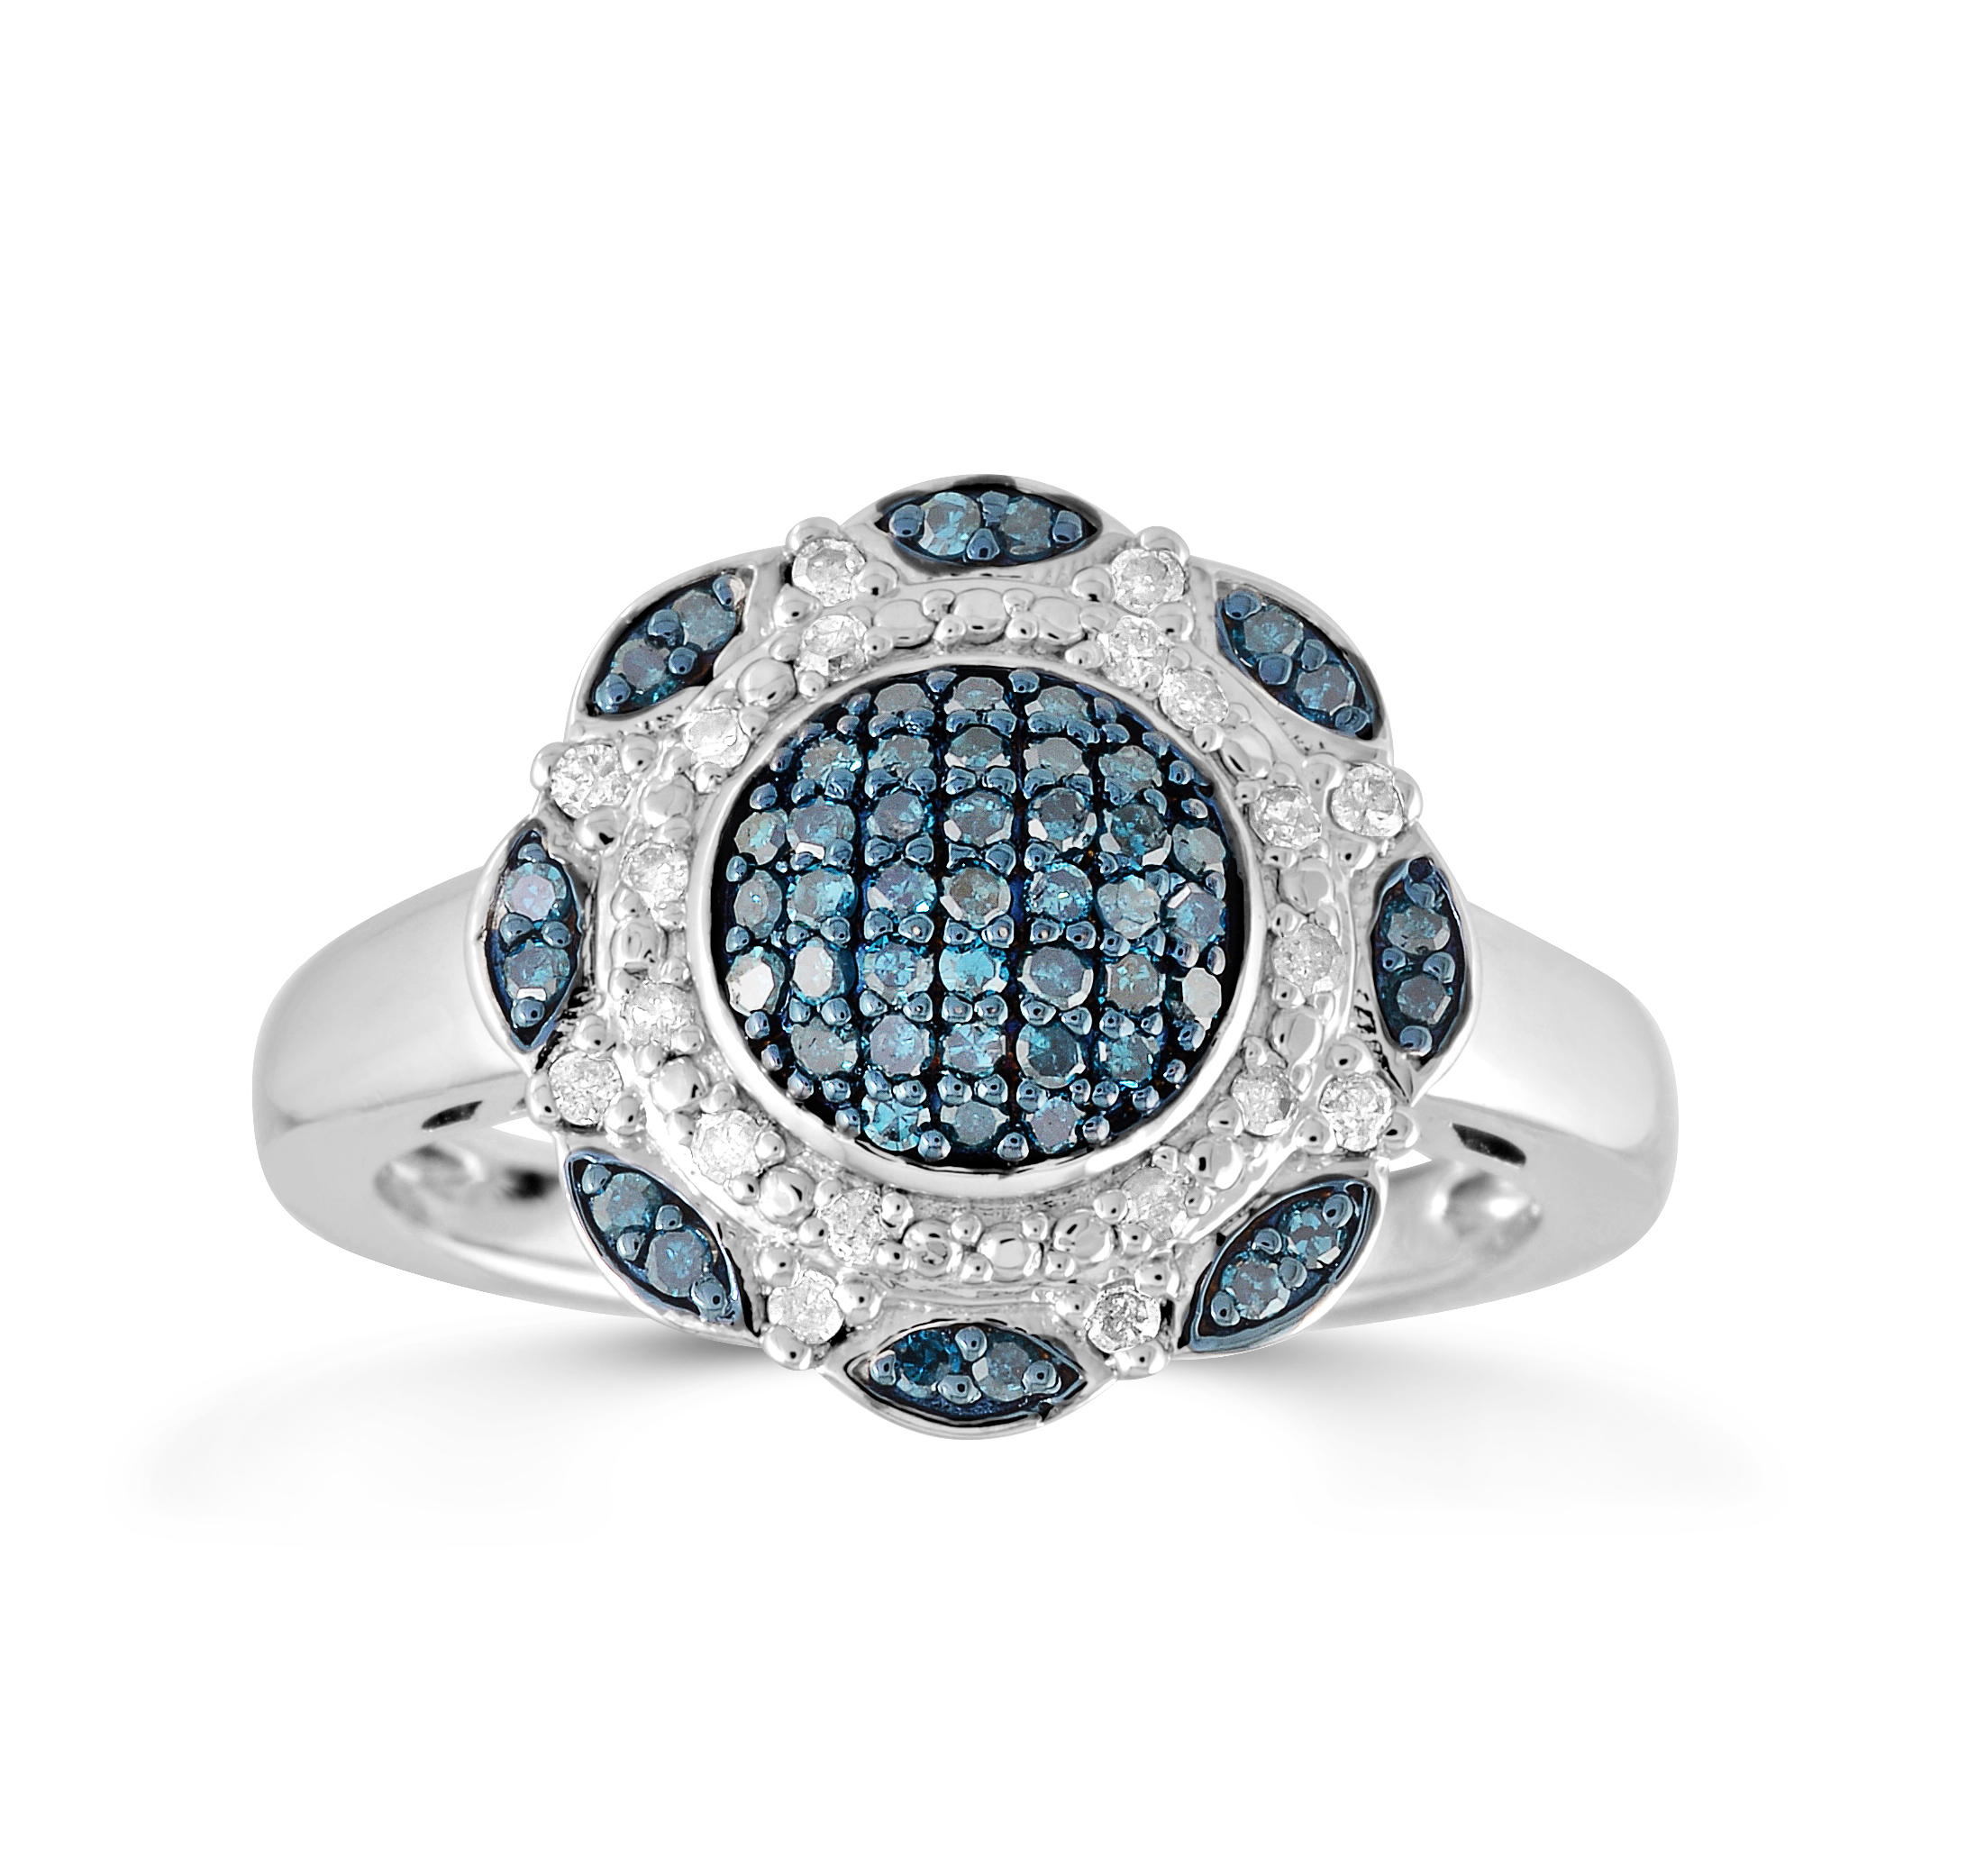 Cocktail ring in sterling silver with blue and white diamonds 0.33 Carats T.W.